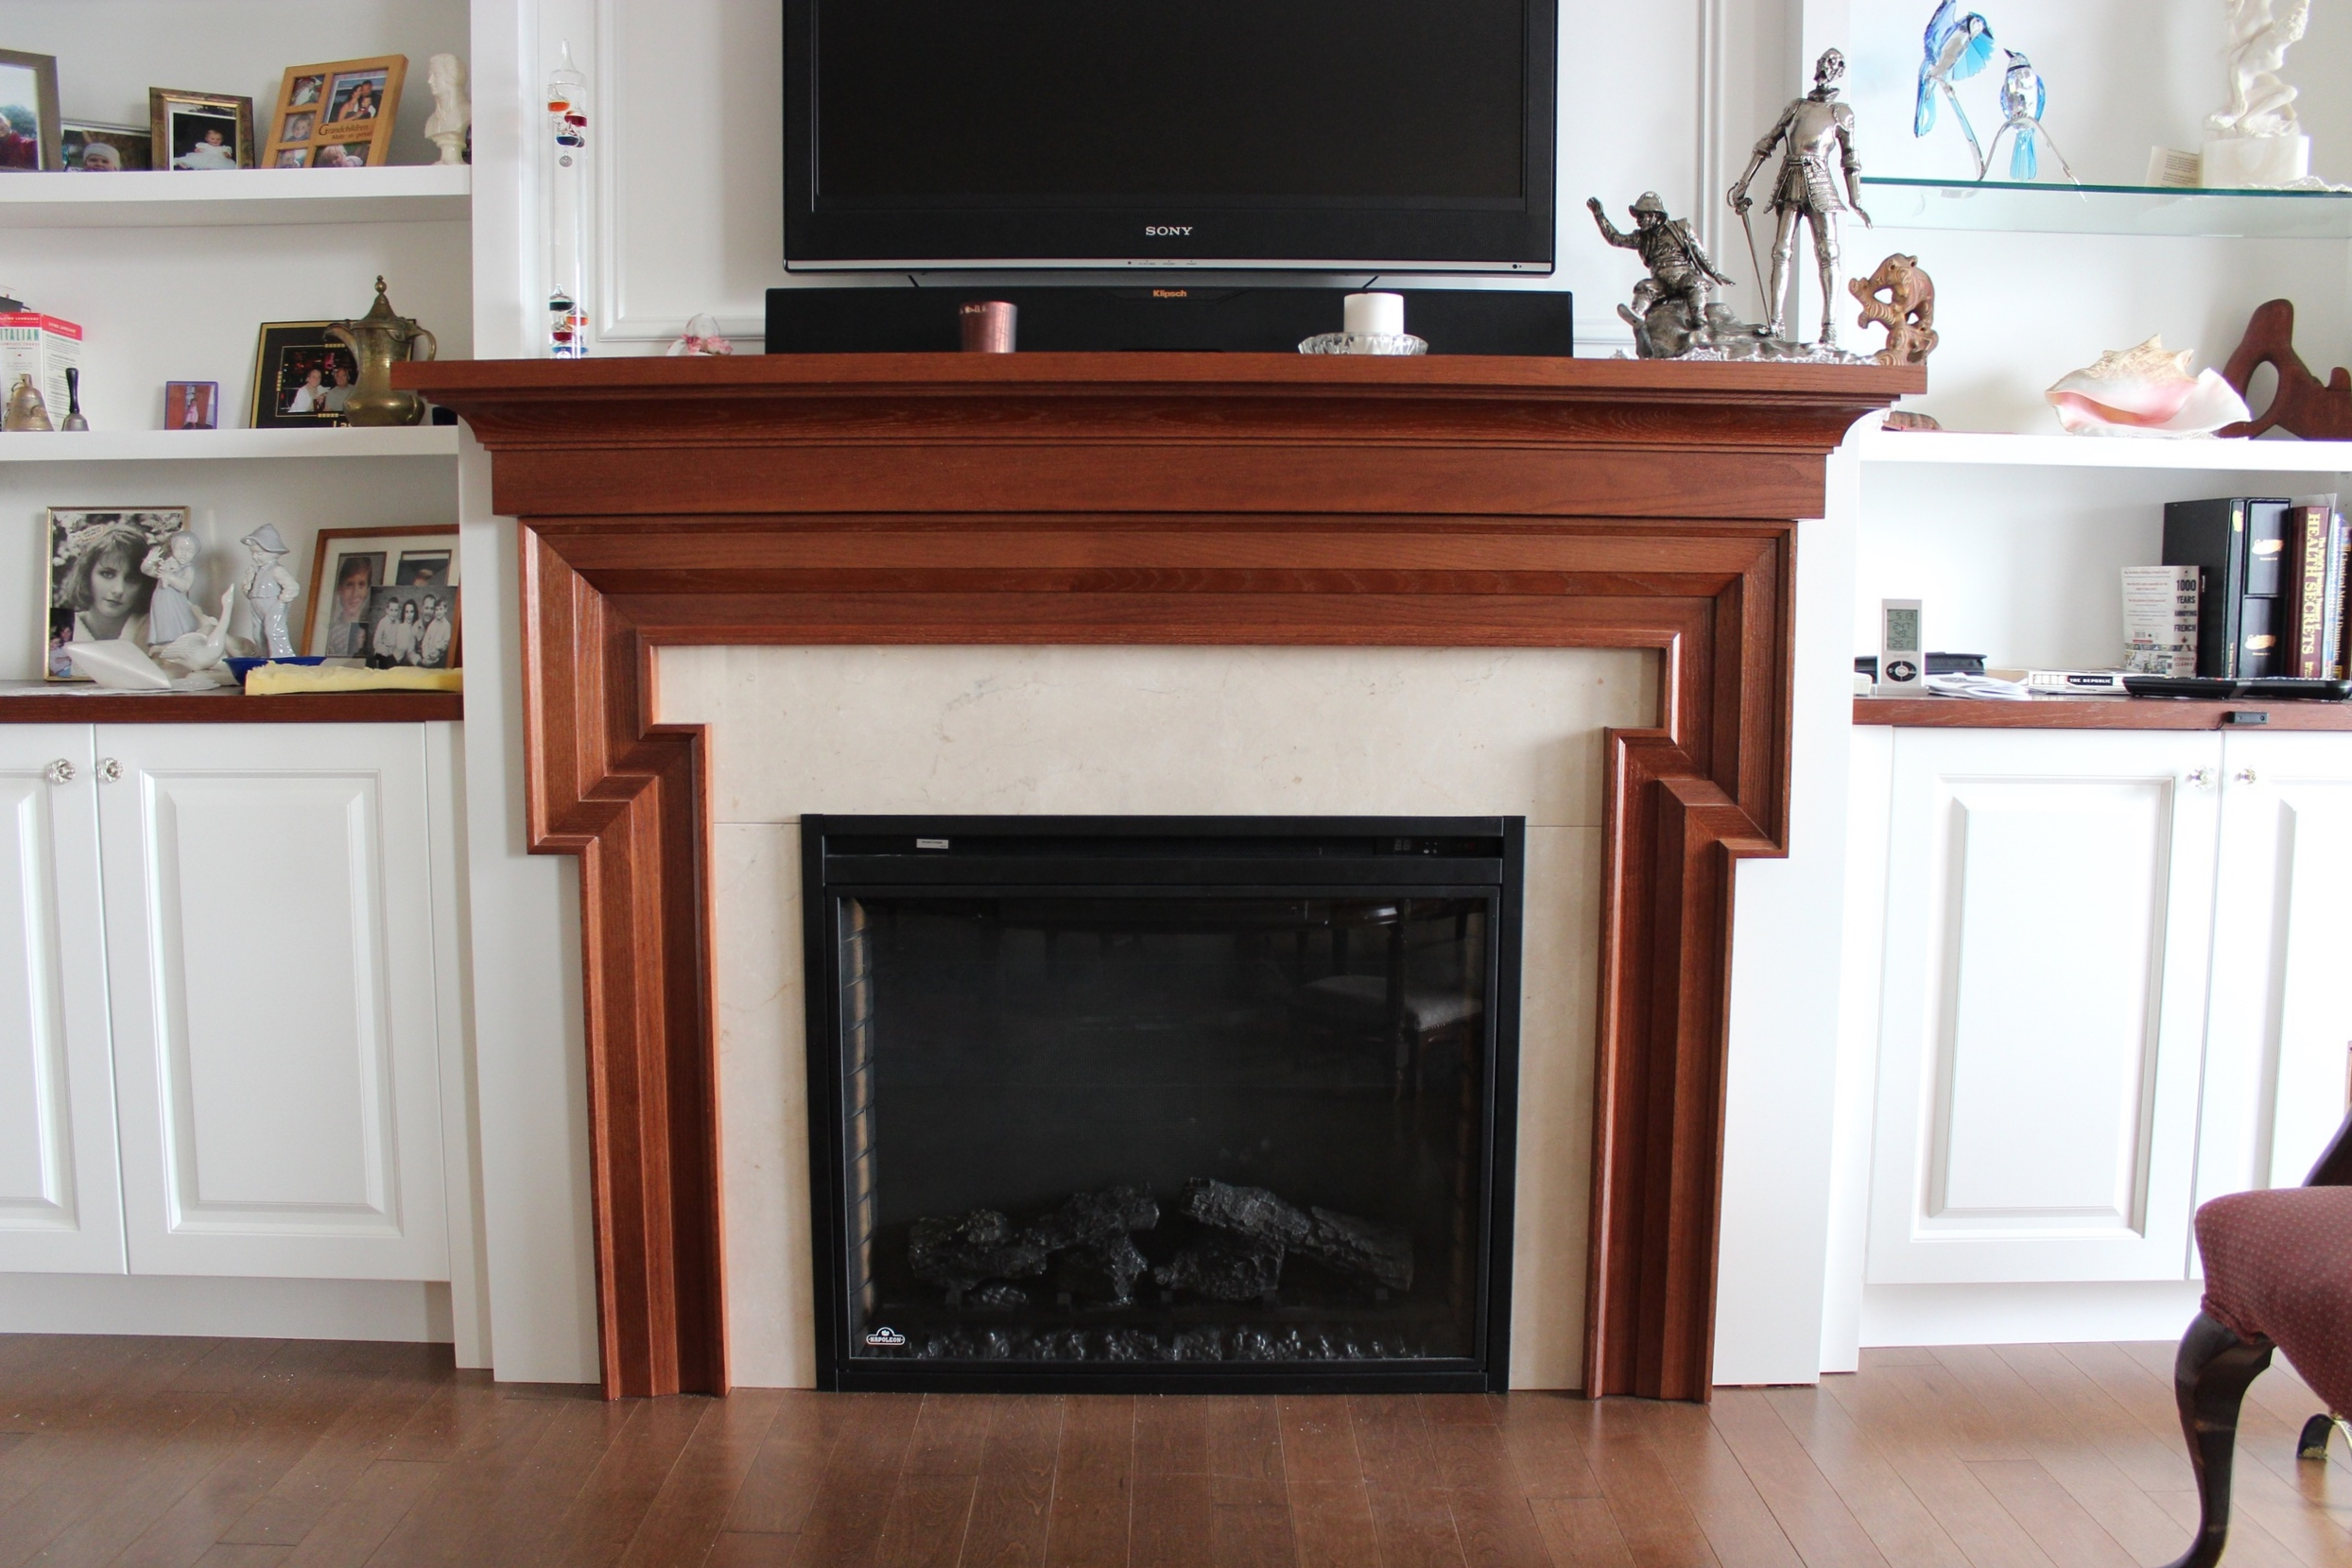 Custom fireplace stained to match furniture. Marble surround with electric fireplace.